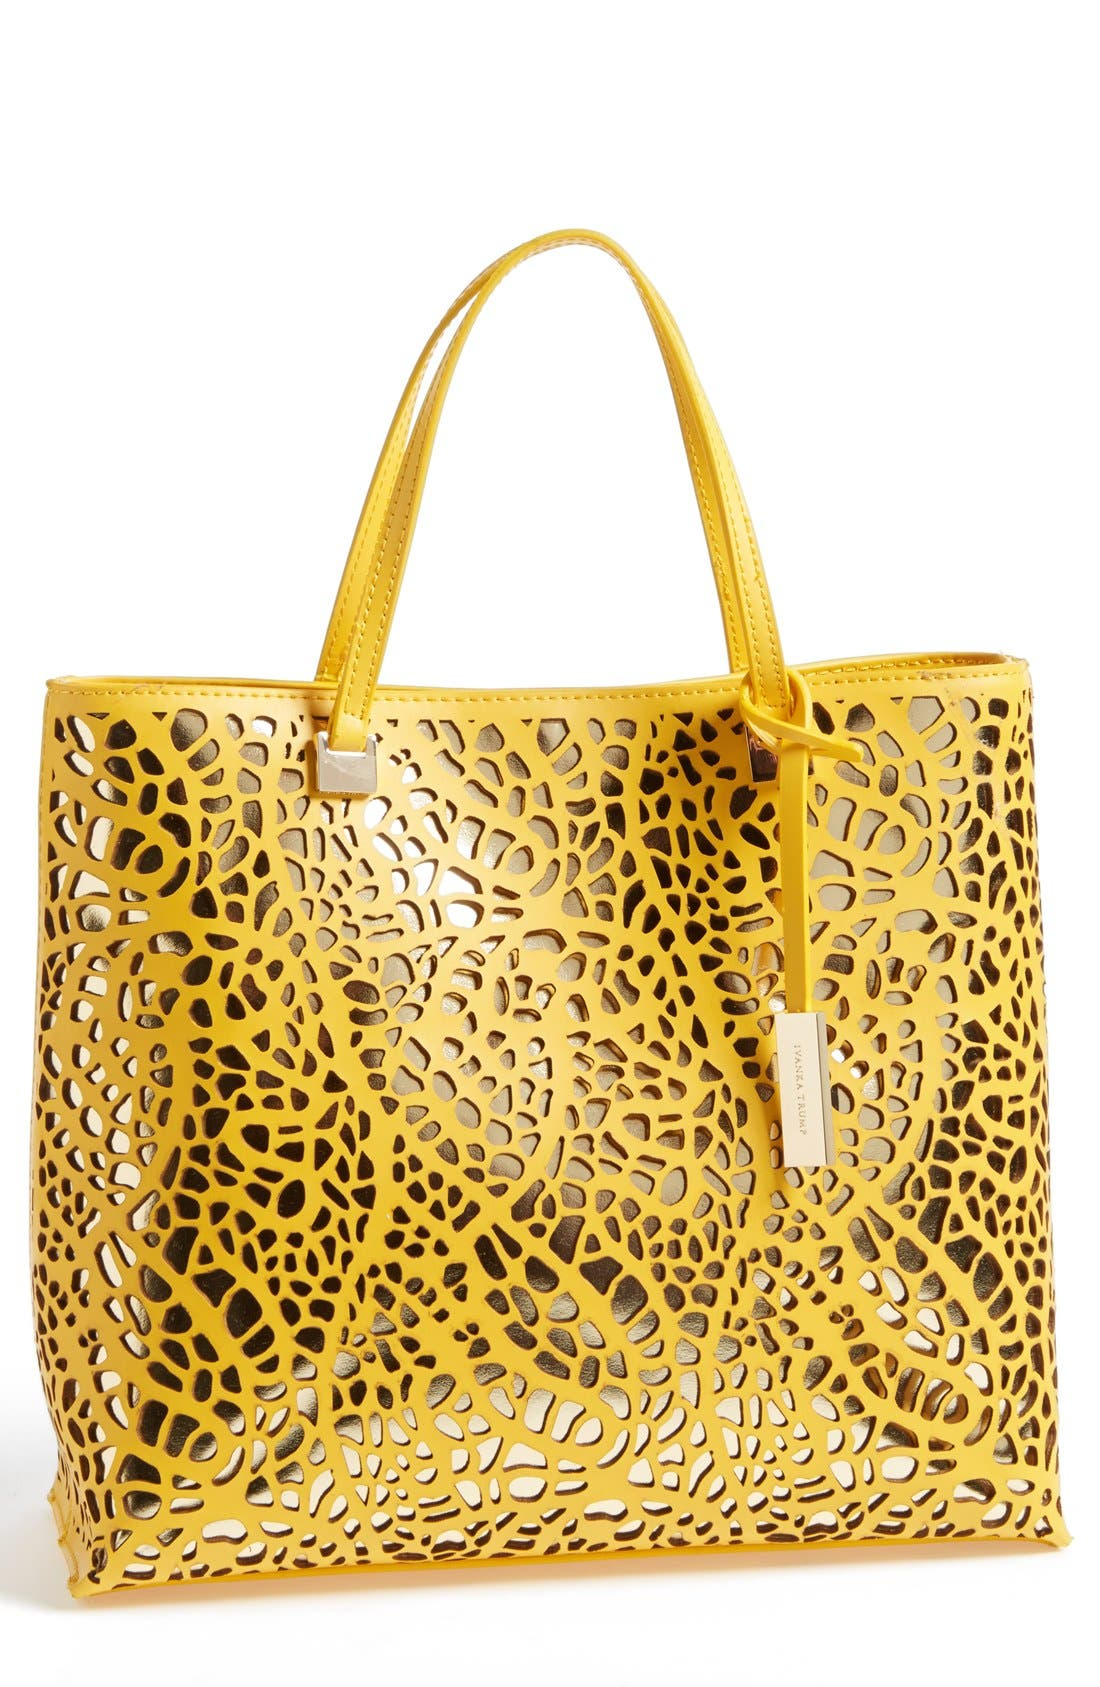 Alternate Image 1 Selected - Ivanka Trump 'Julia' Perforated Handbag